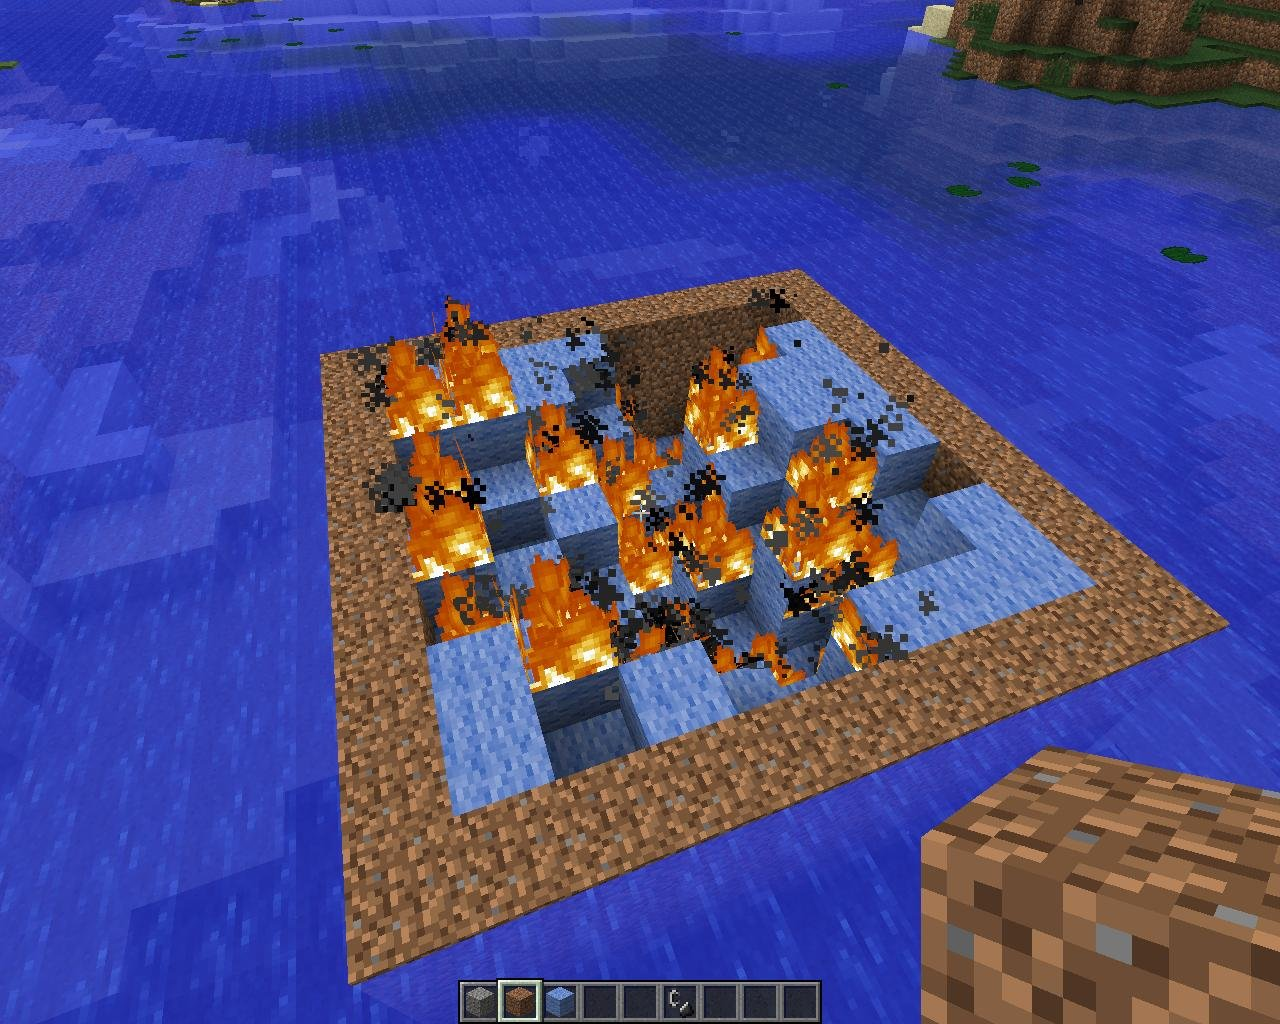 the fire consumes the wool, leaving empty space in its place